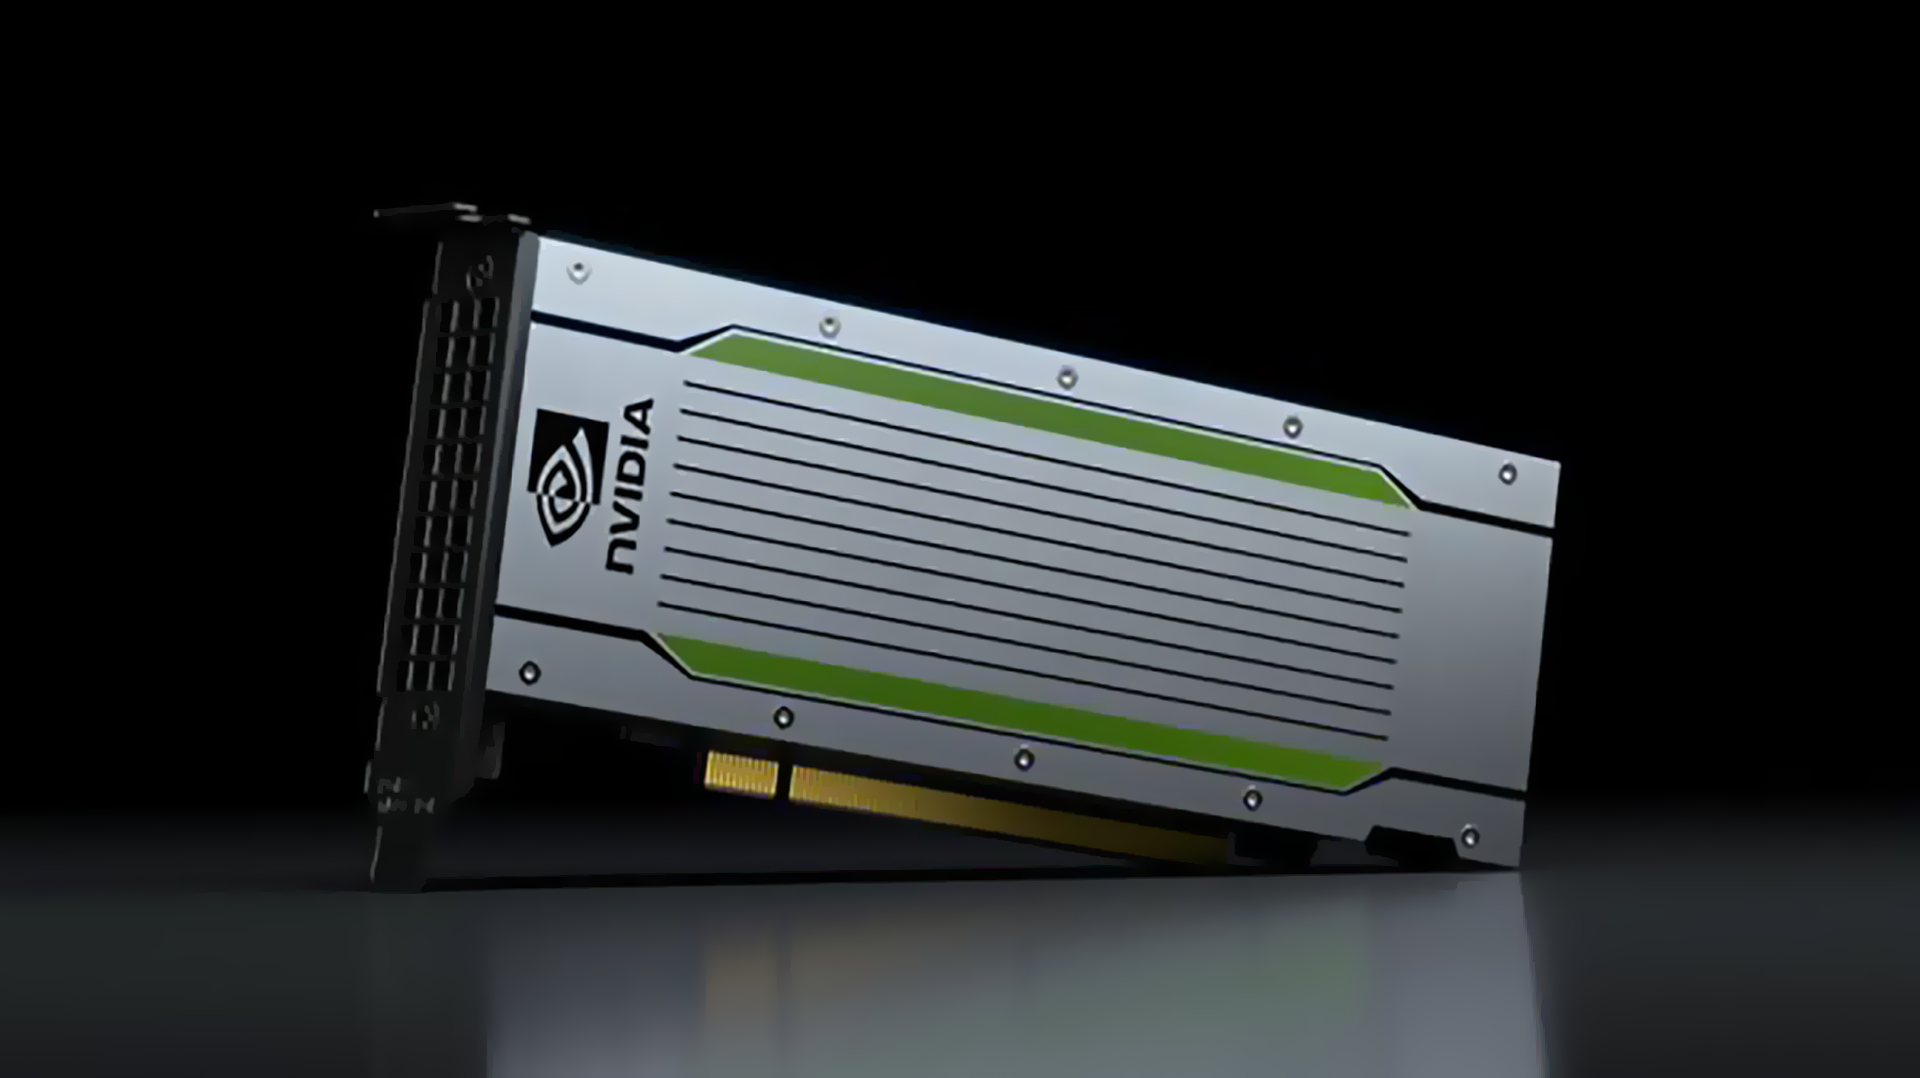 nvidia releases a 16gb rtx 2080 lite to fuel the ai